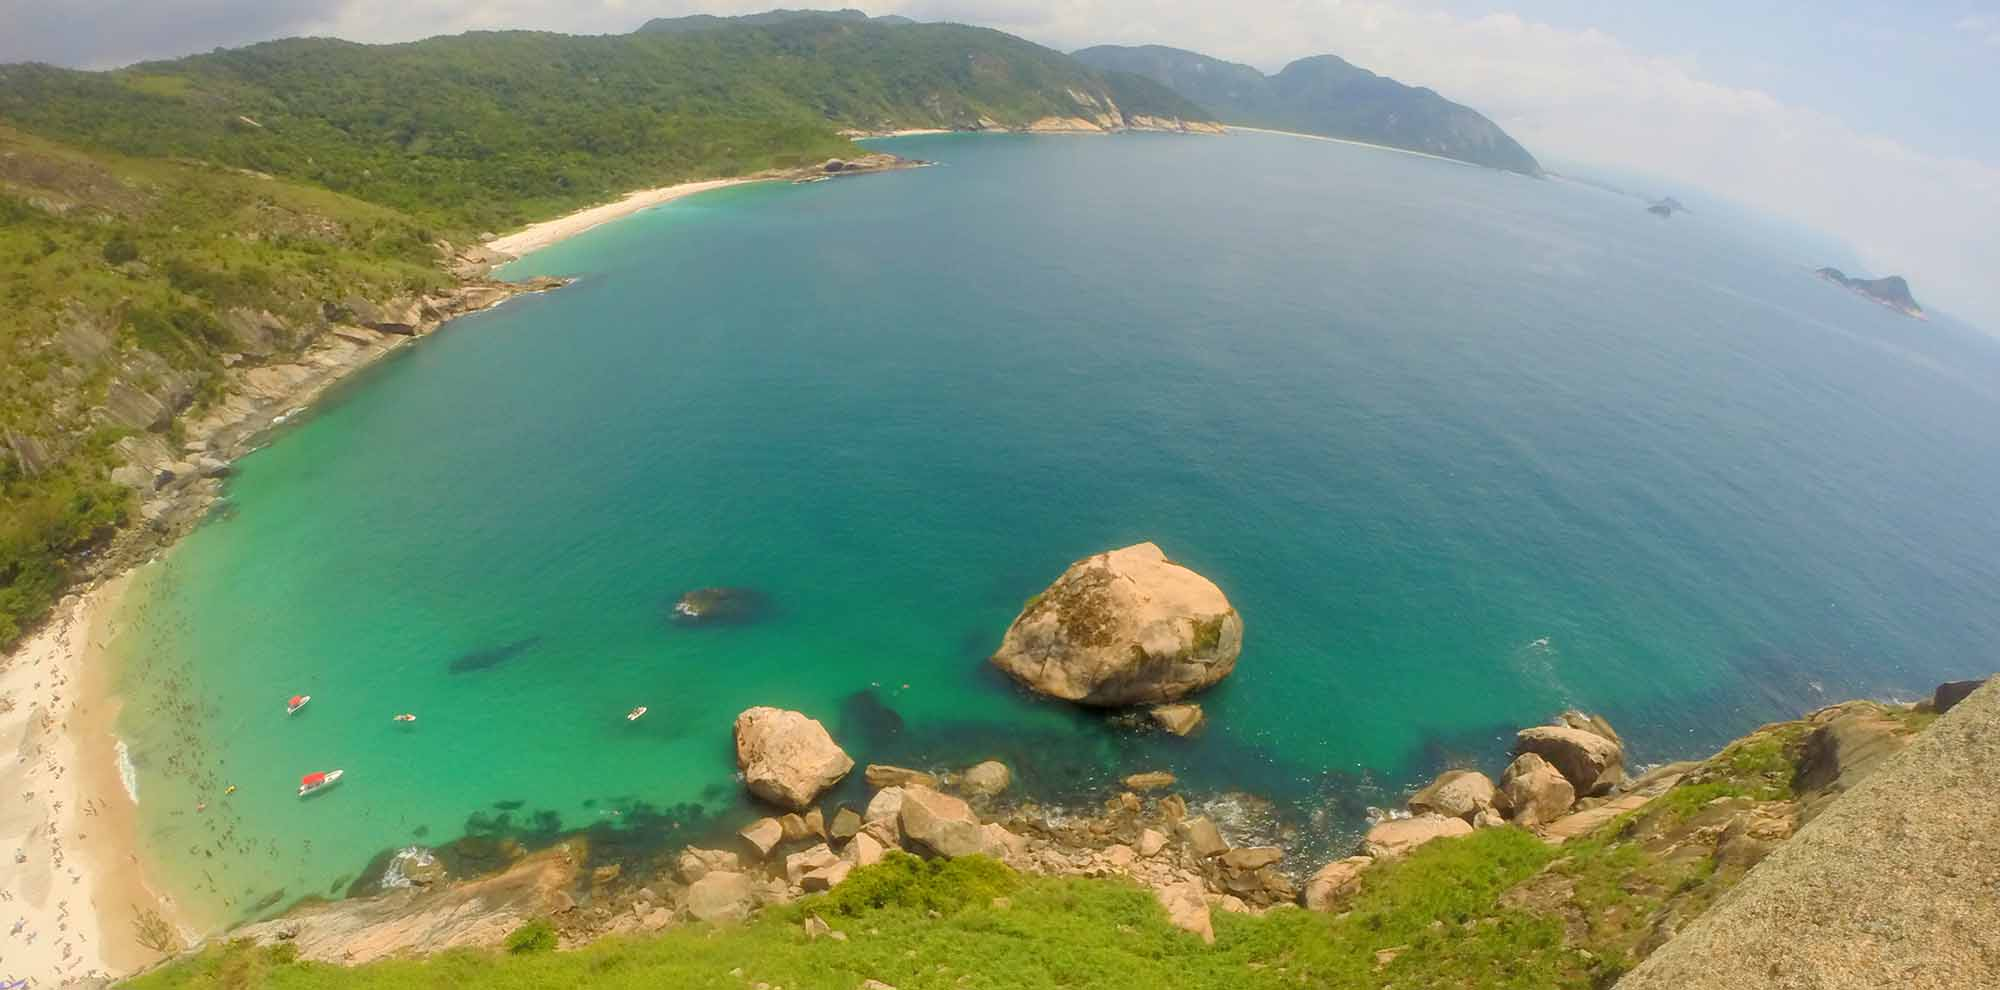 Praia do Perigoso - Barra de Guaratiba